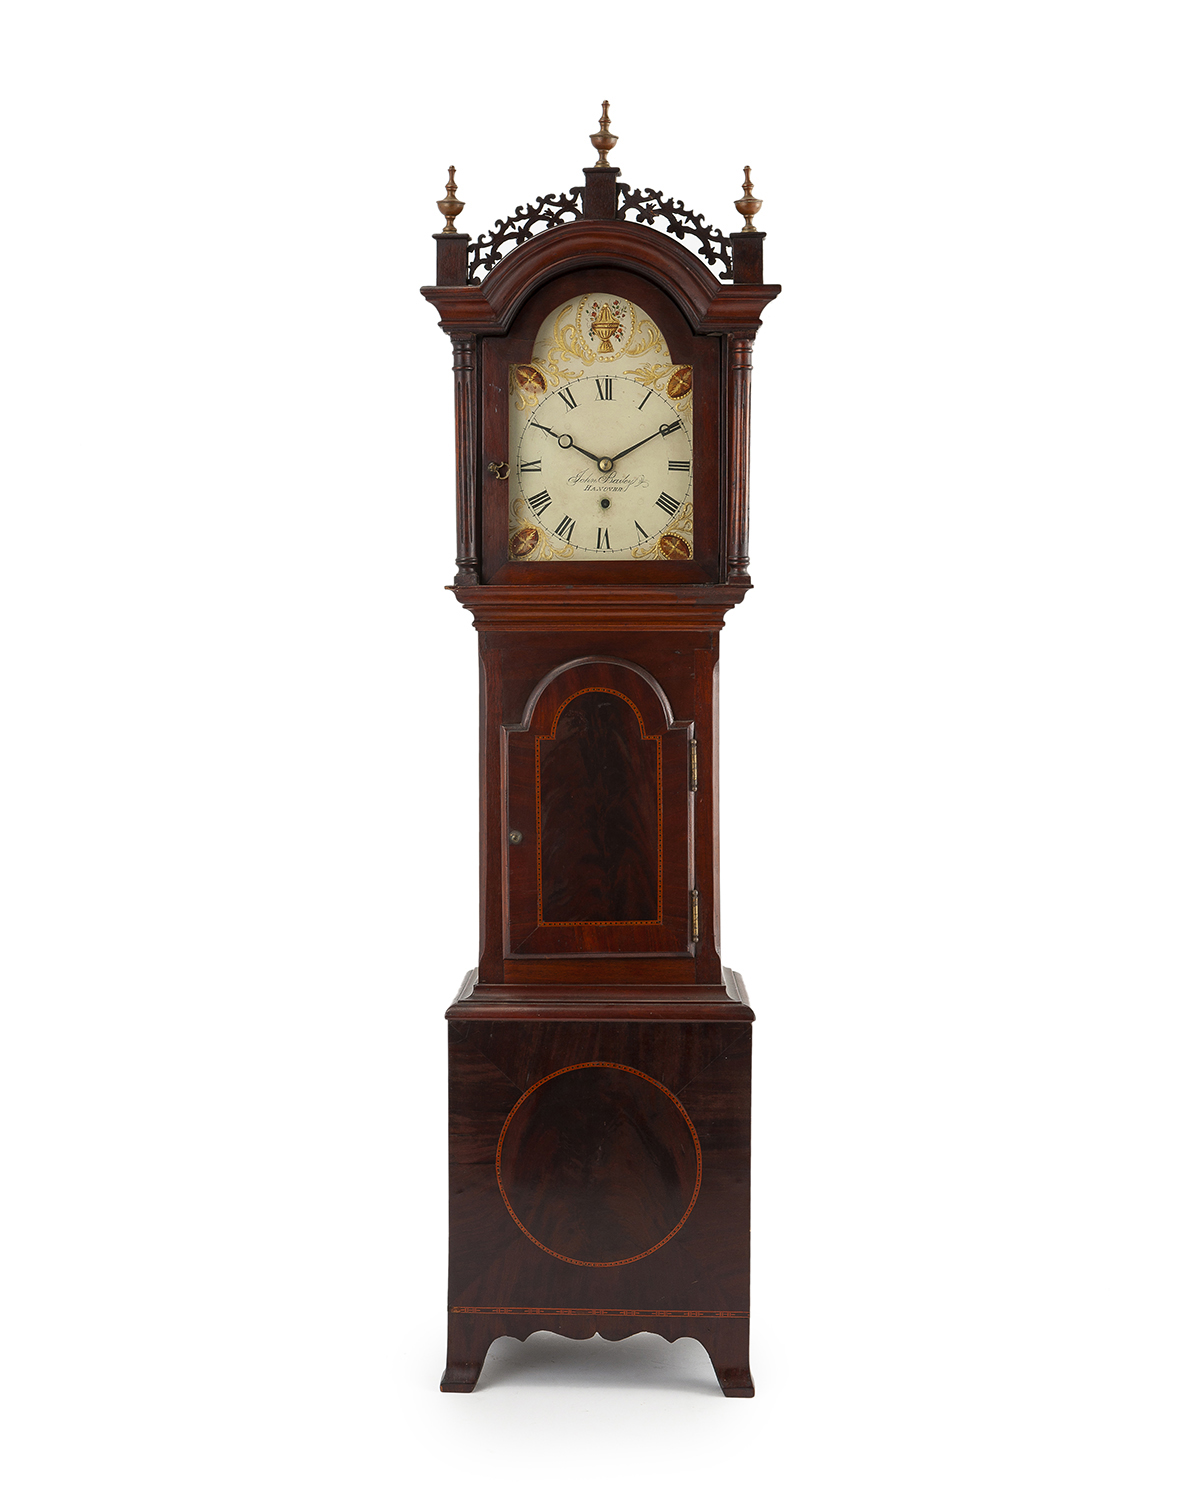 An American diminutive tall case clock